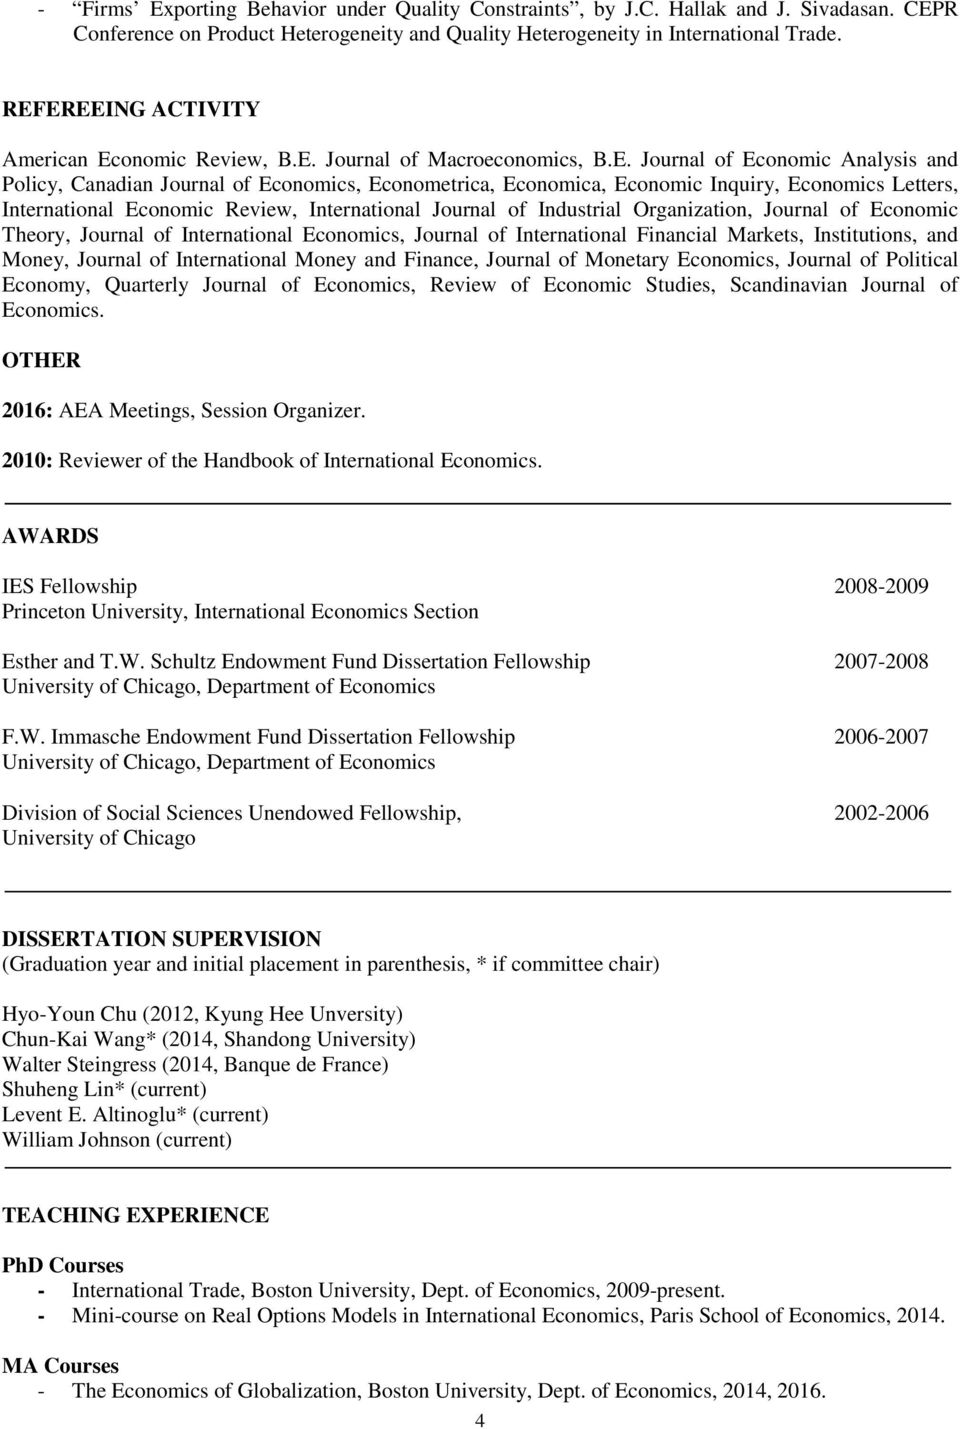 Economics Letters, International Economic Review, International Journal of Industrial Organization, Journal of Economic Theory, Journal of International Economics, Journal of International Financial